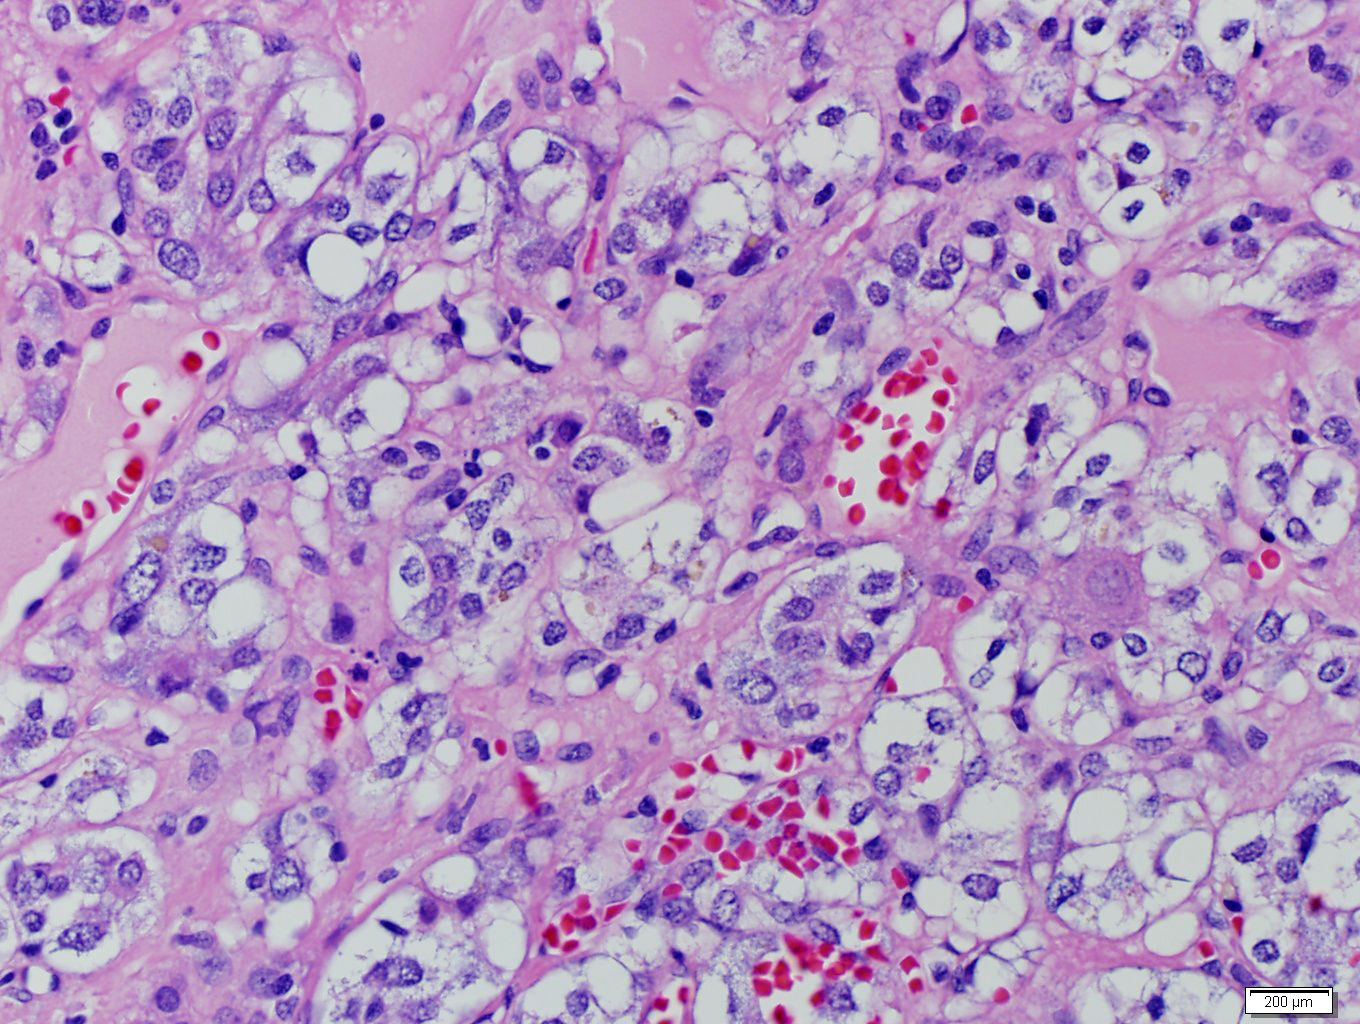 Adrenal metastasis from clear cell renal cell carcinoma